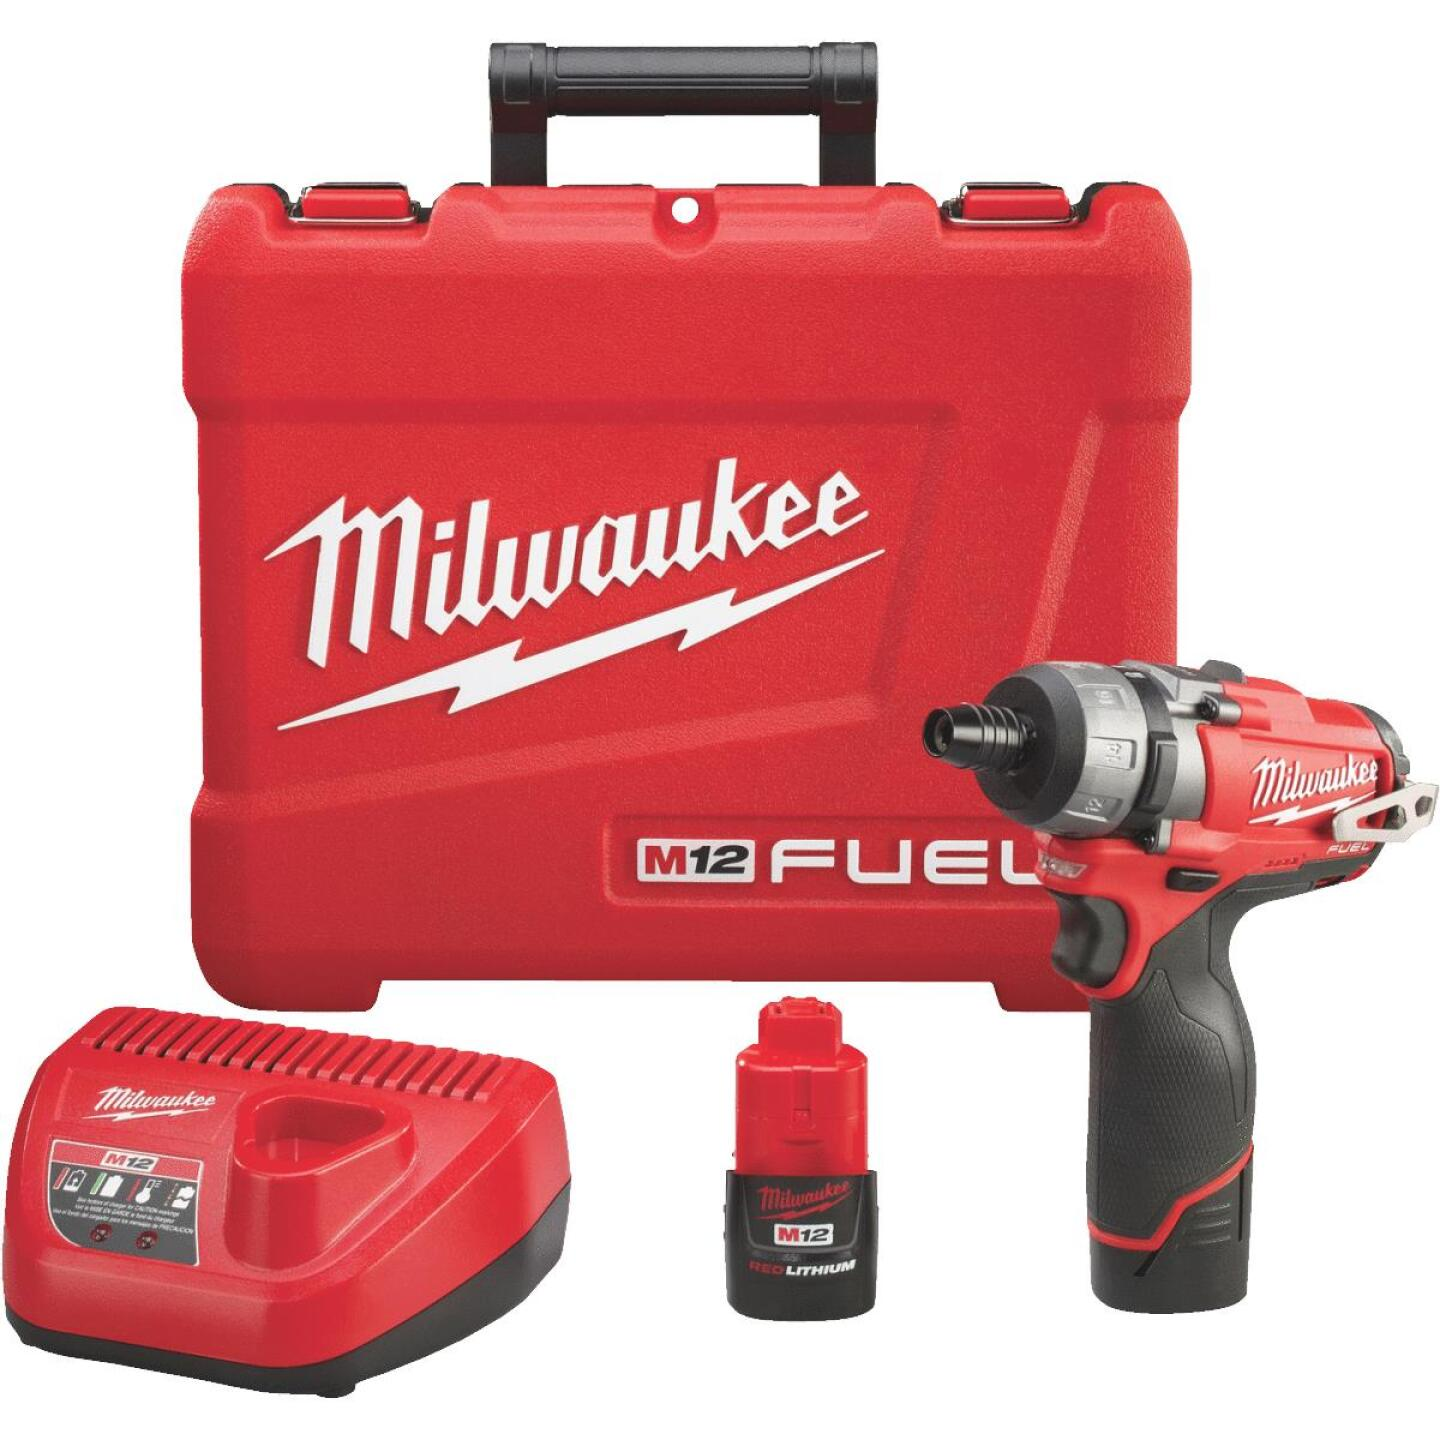 Milwaukee M12 FUEL 12-Volt Lithium-Ion Brushless 1/4 In. Cordless Screwdriver Kit Image 1